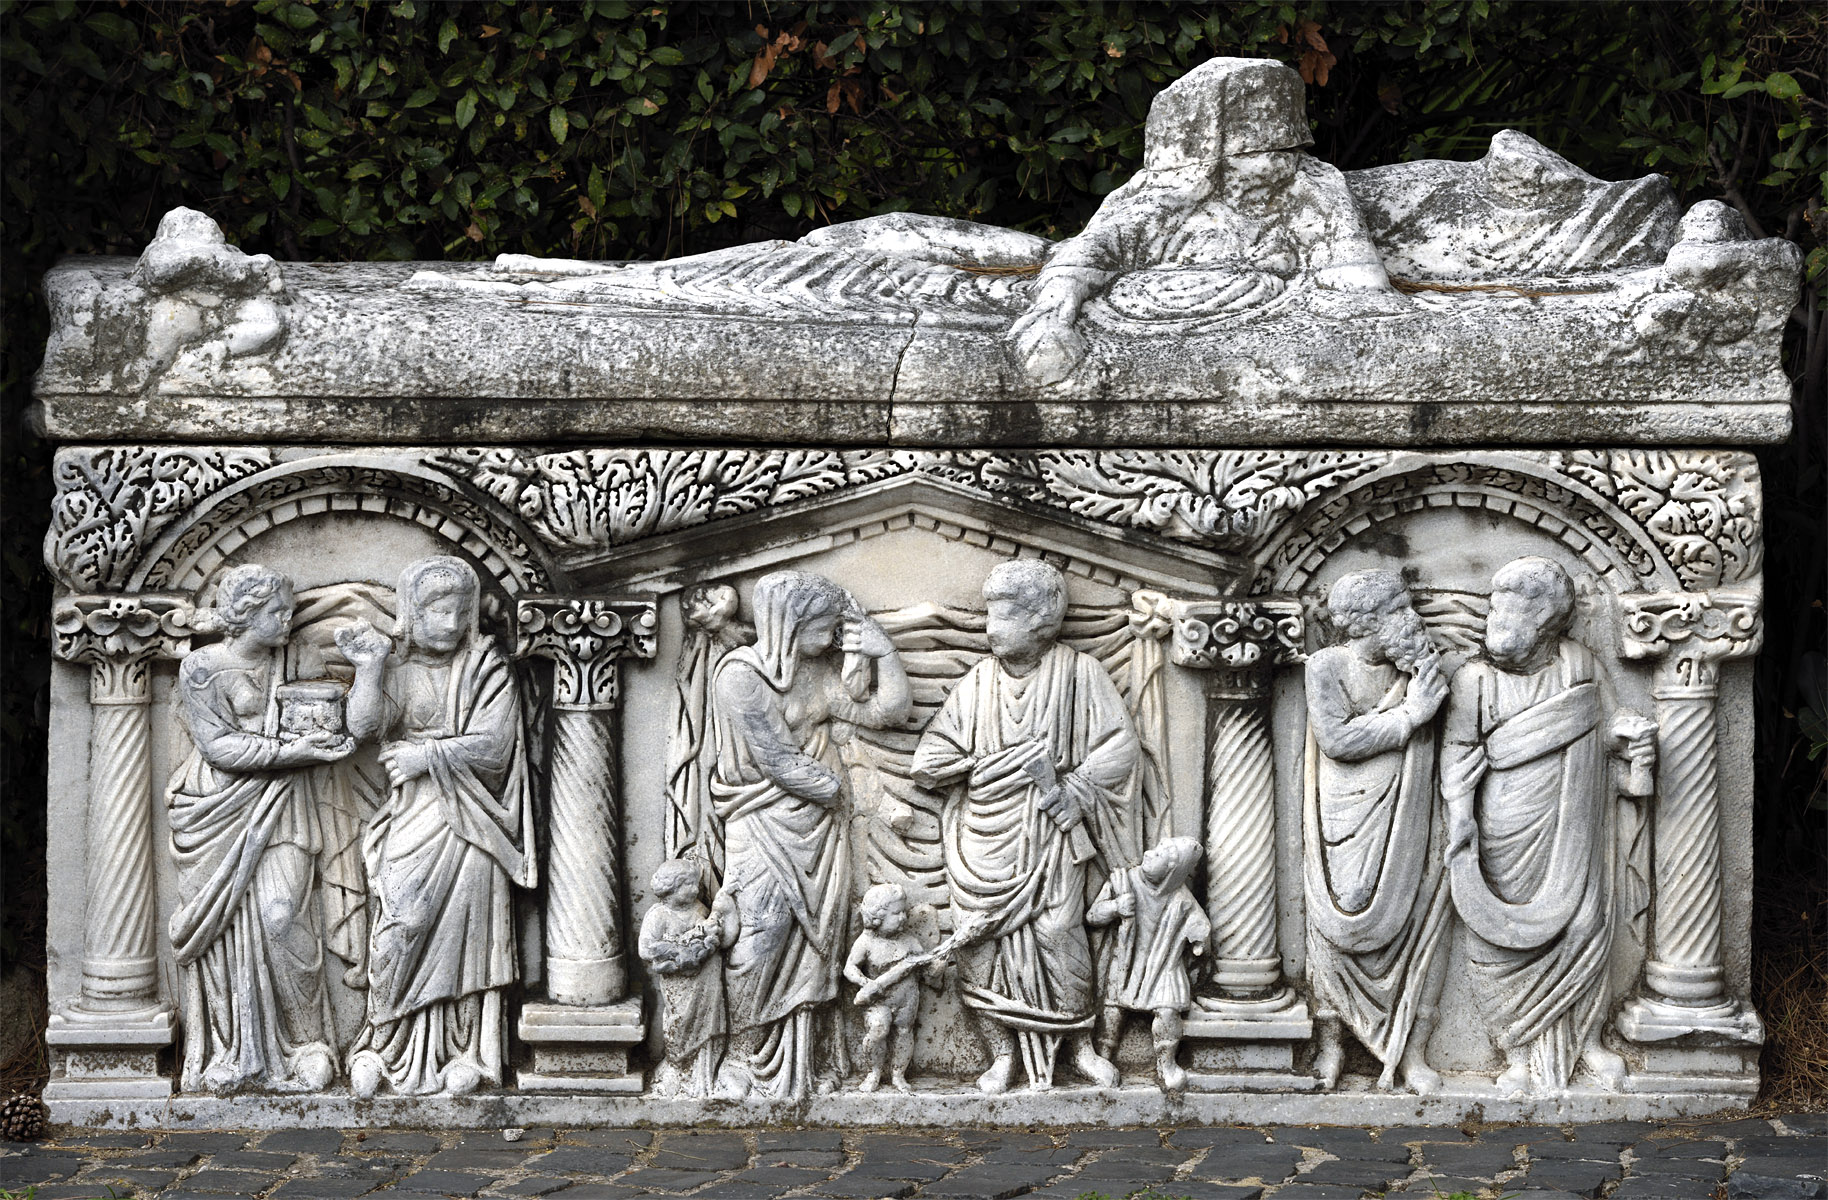 Sarcophagus in the form of a portico with arches and a lid with reclining spouses. Marble. Second half of the 3rd — first half of the 4th cent. CE. Ostia, Archaeological Museum